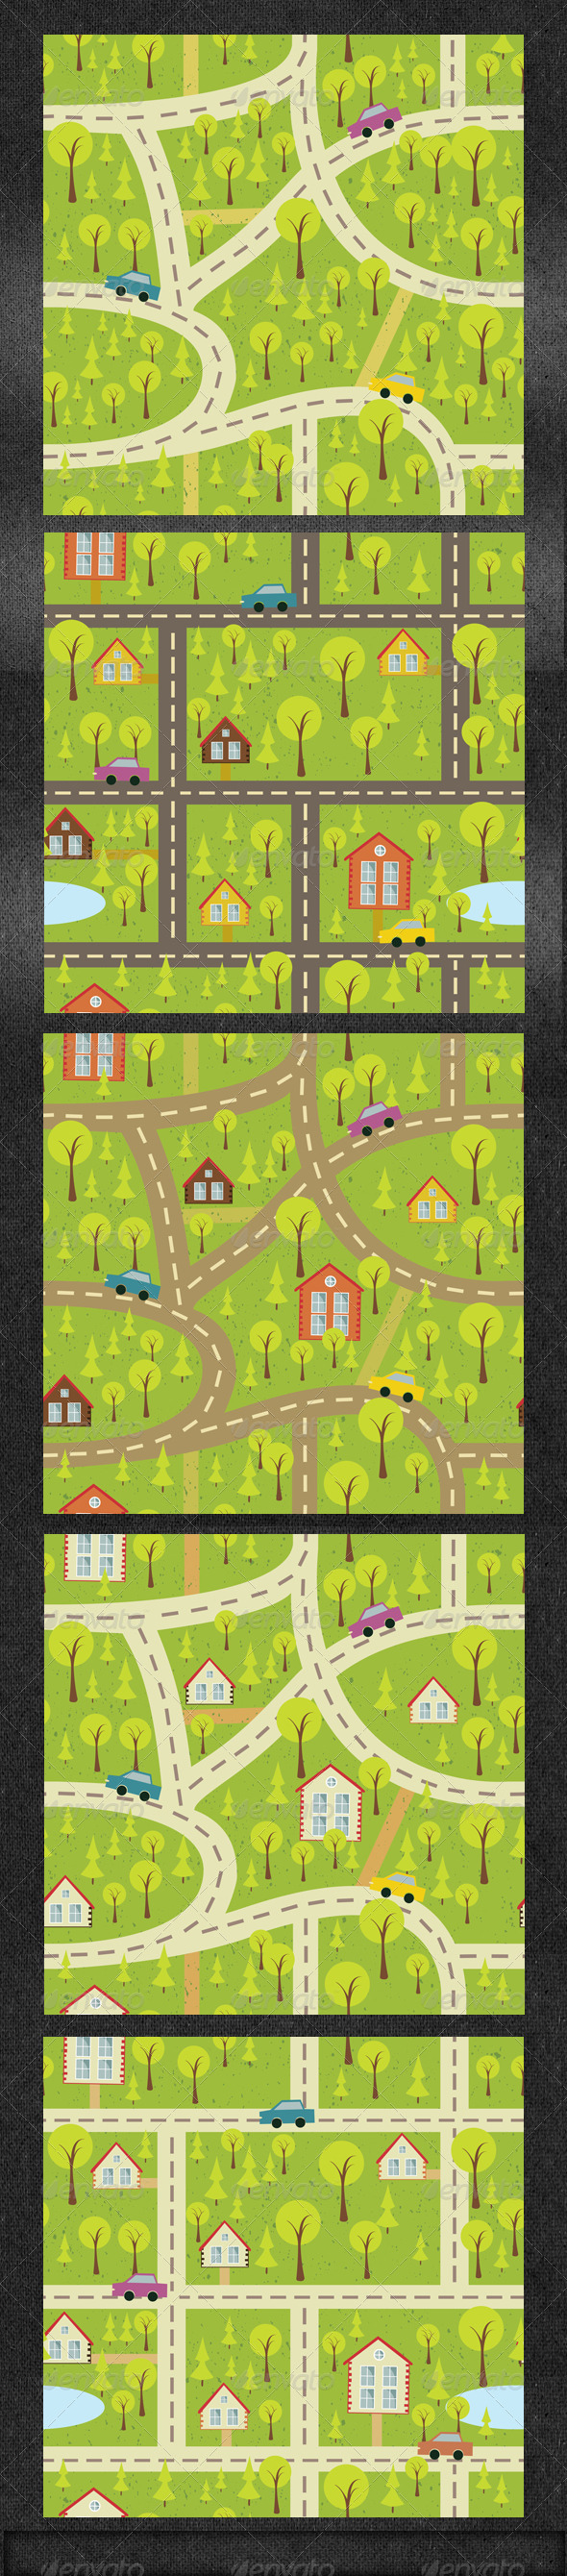 GraphicRiver Seamles Pattern Background with Houses 5978894